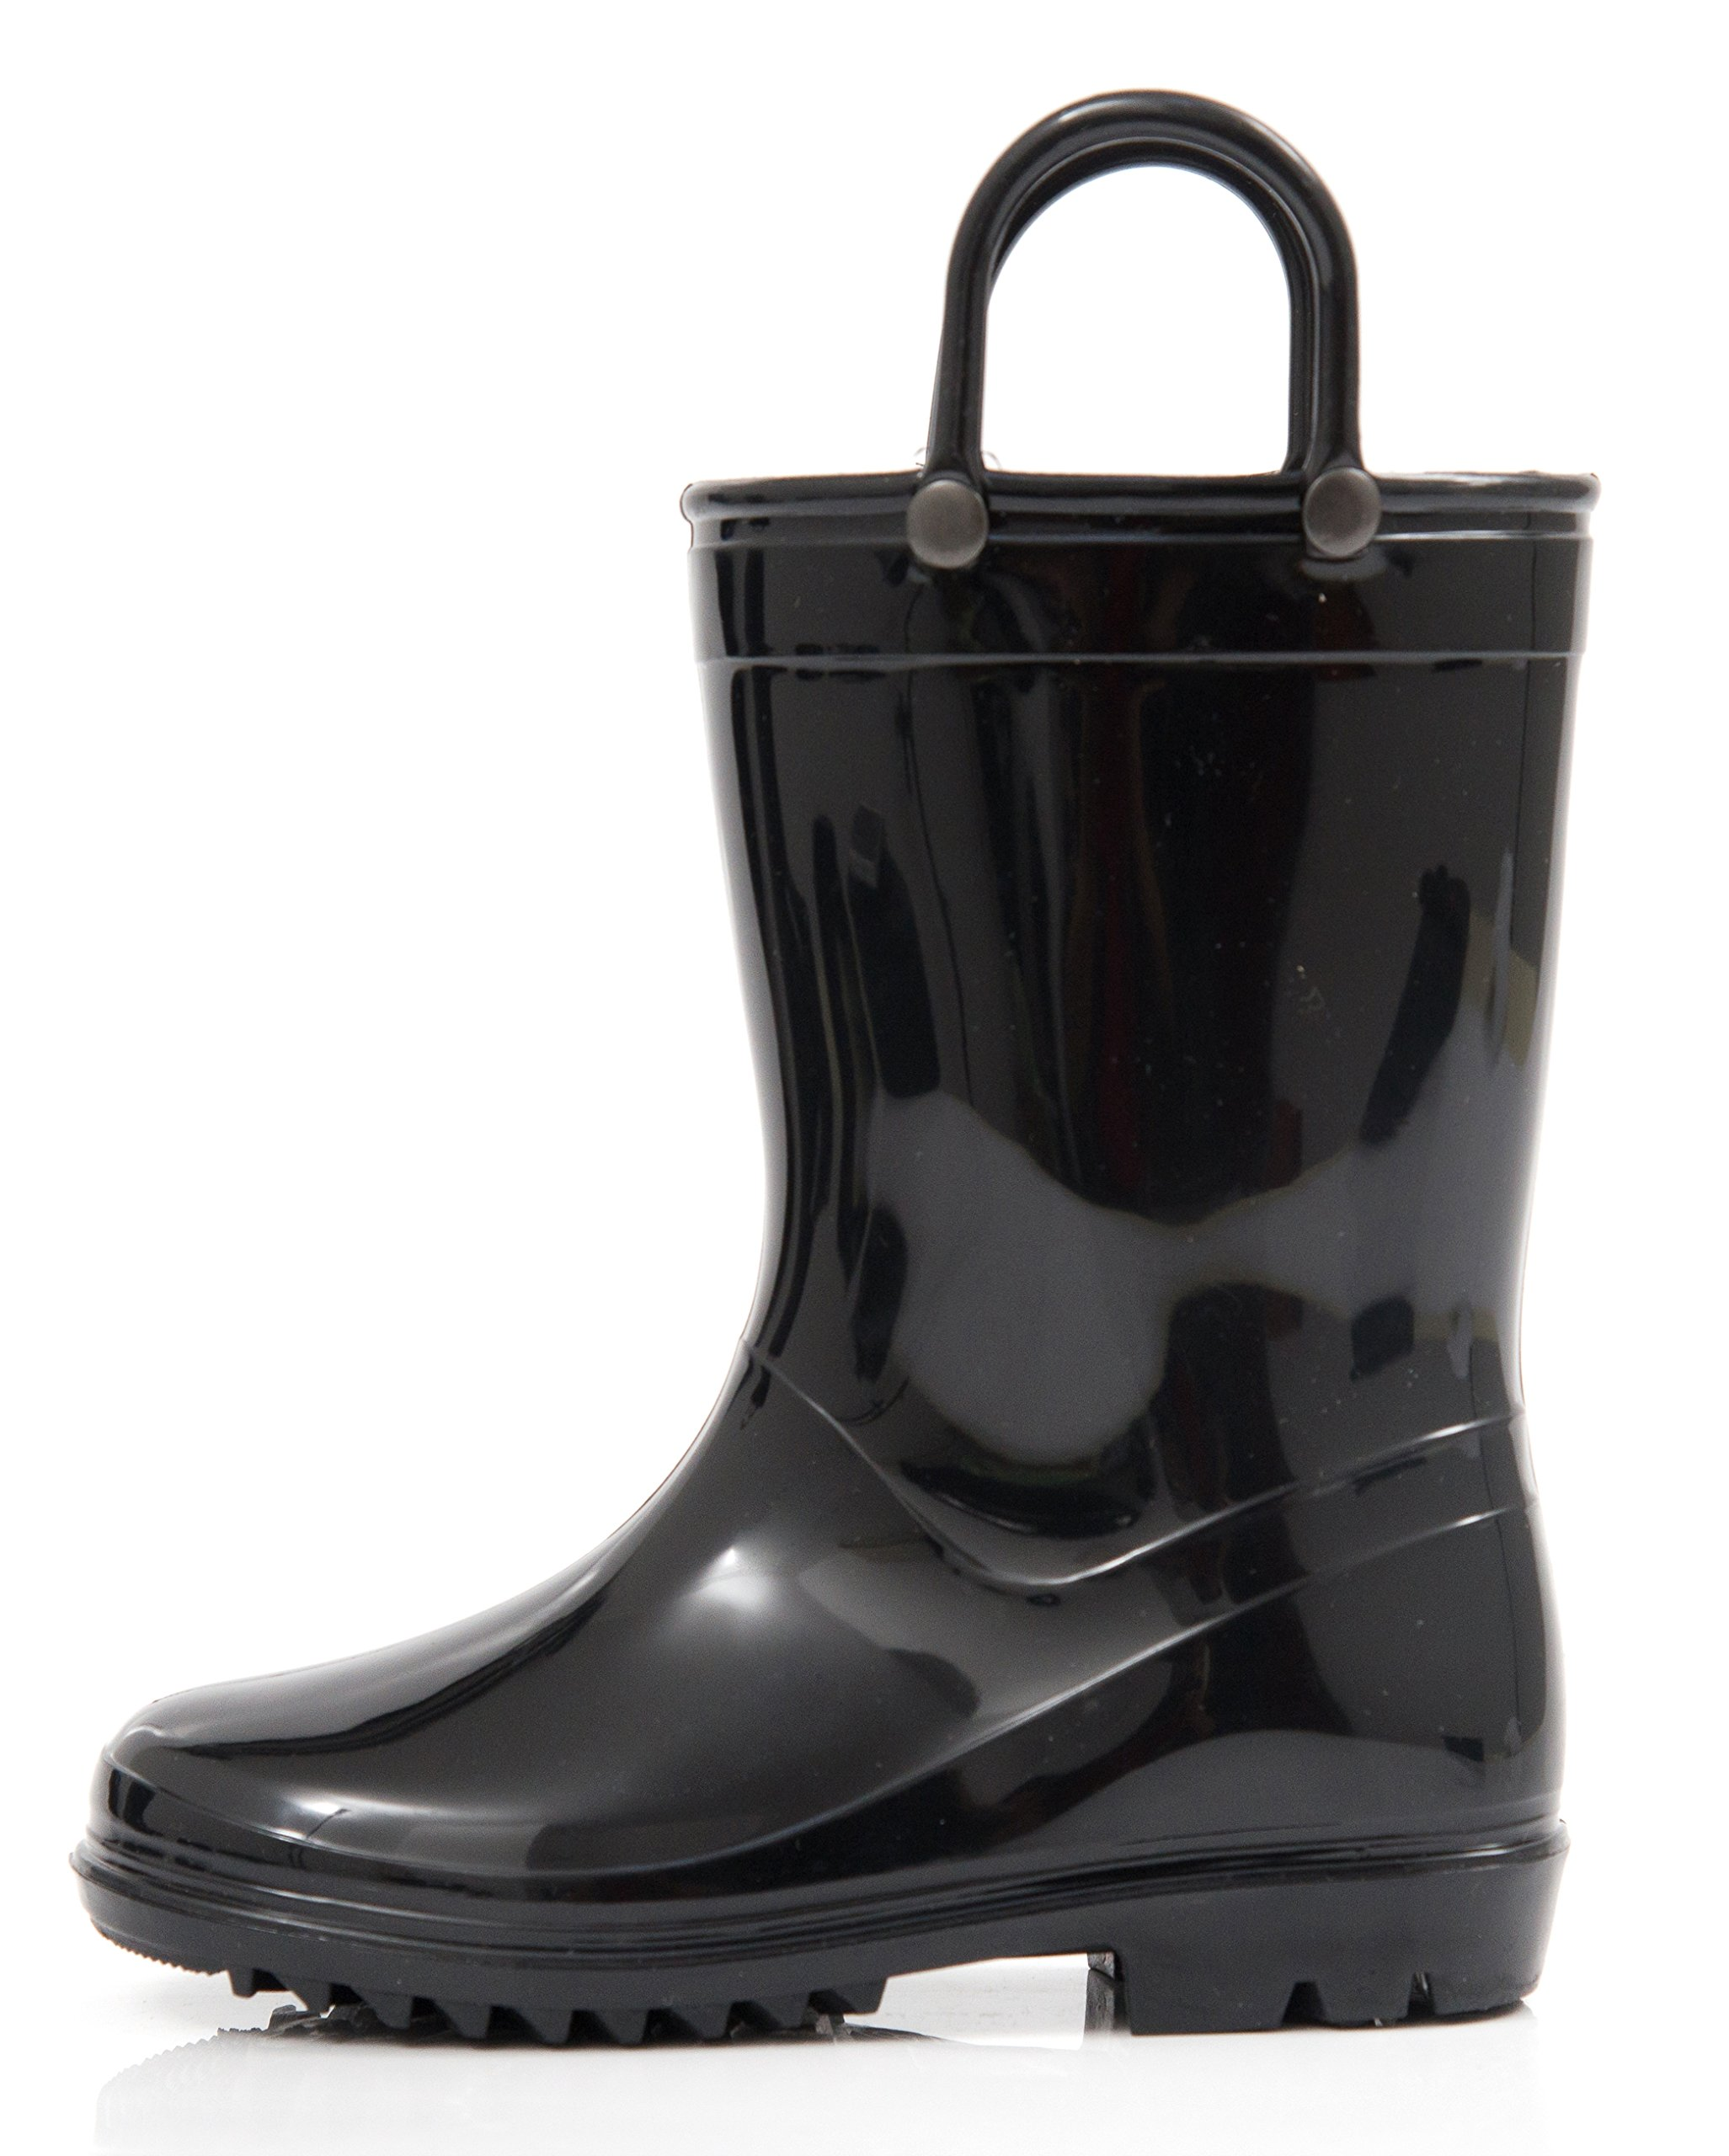 Outee Toddler Girls Boys Rain Boots Kids Waterproof Shoes Black Lightweight Solid Cute Lovely Funny with Easy-On Handles Classic Comfortable Removable Insoles (Size 8,Black)